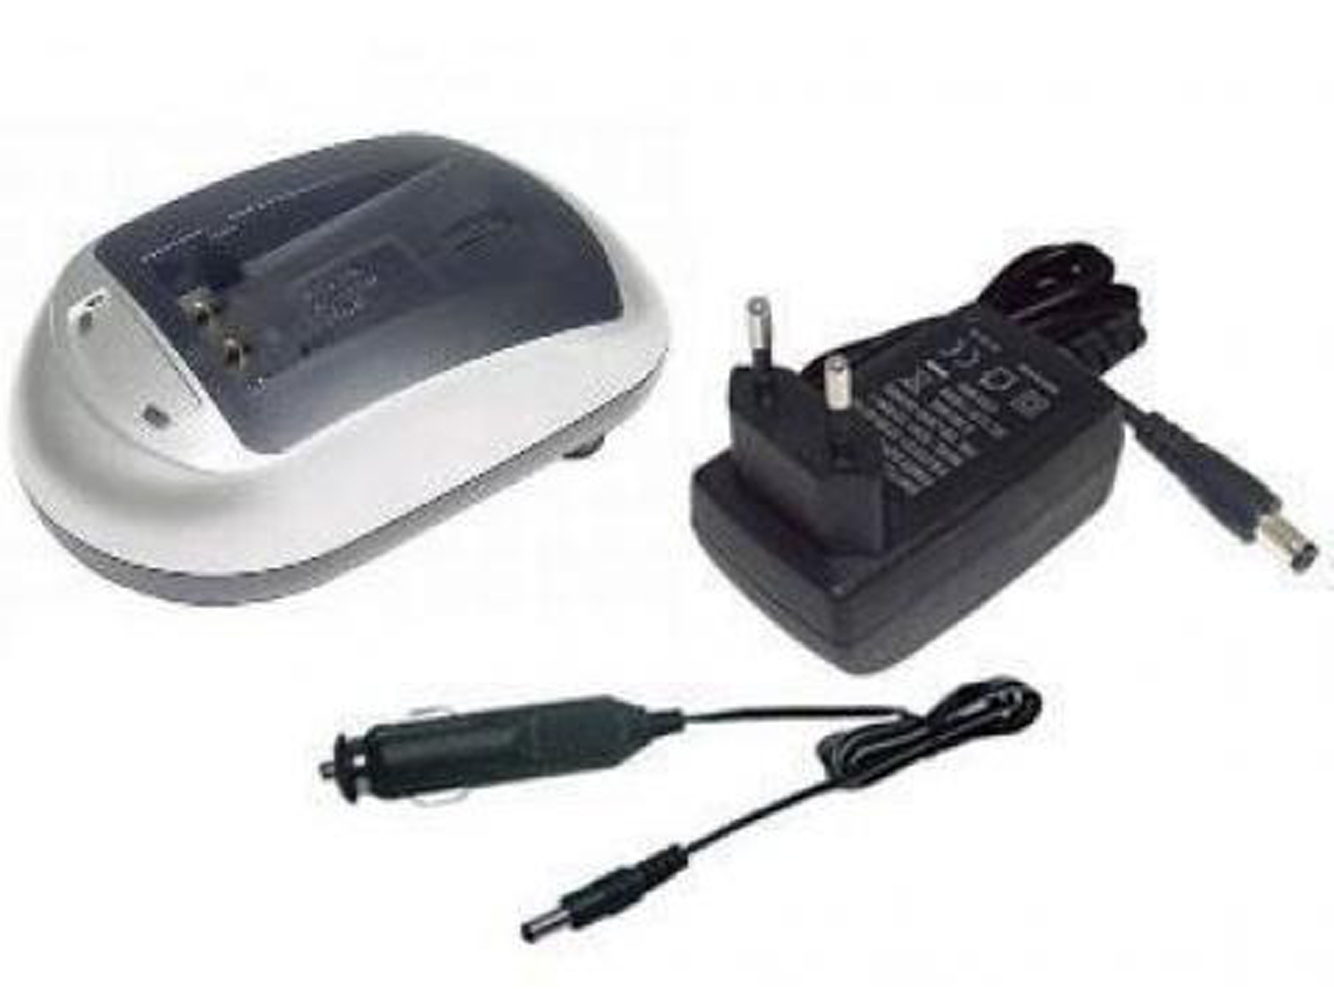 Battery Charger for MINOLTA NP-500